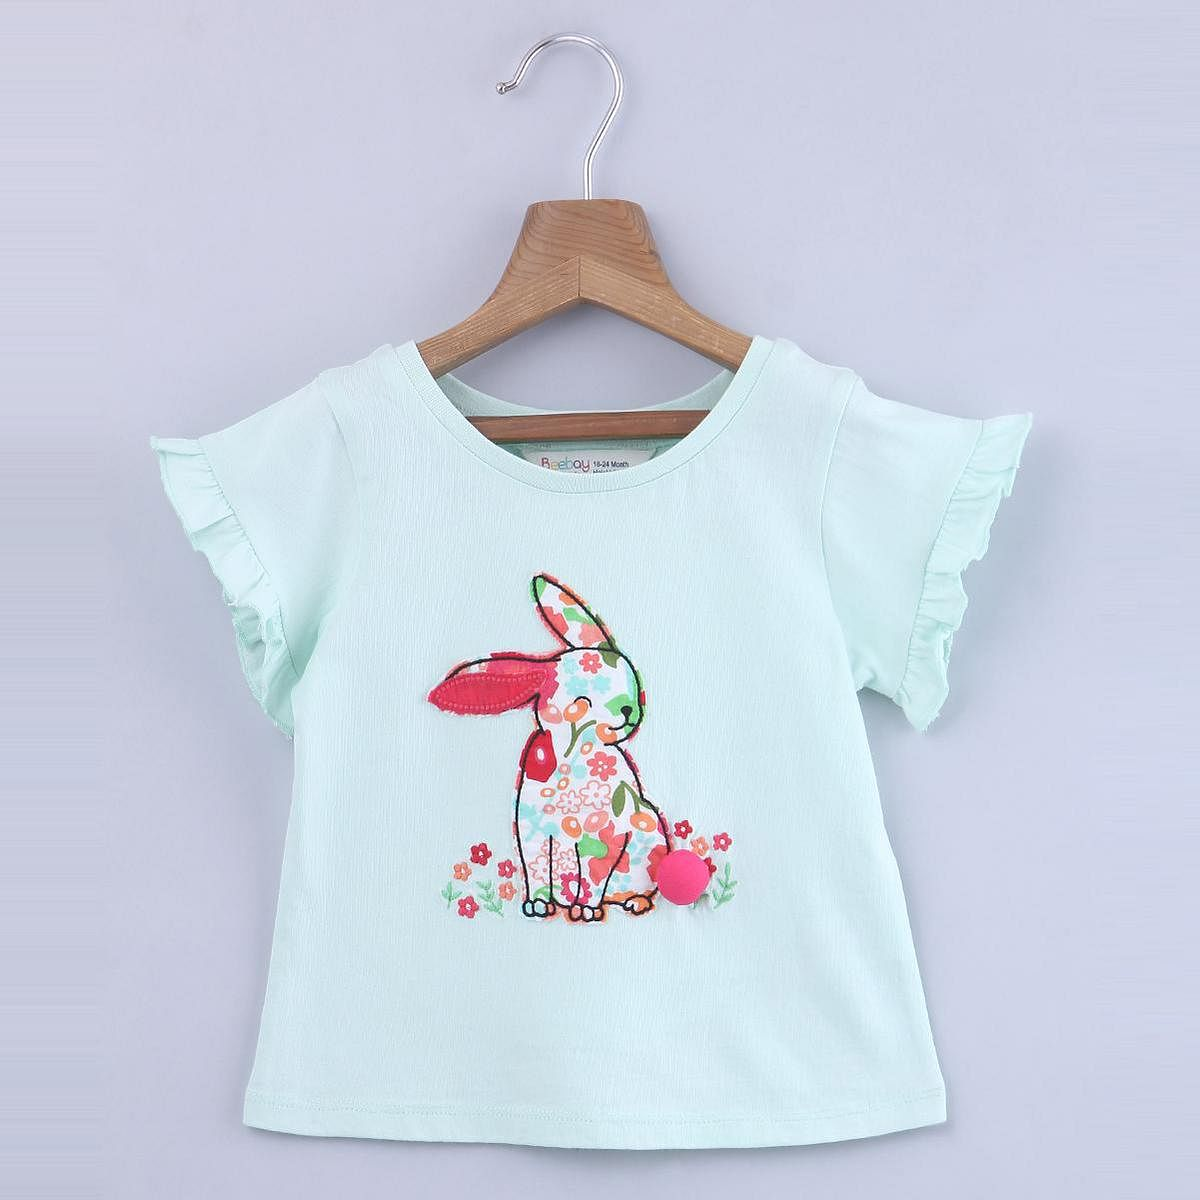 Beebay - Lt.Green Colored Bunny Applique T-Shirt For Kids Girls